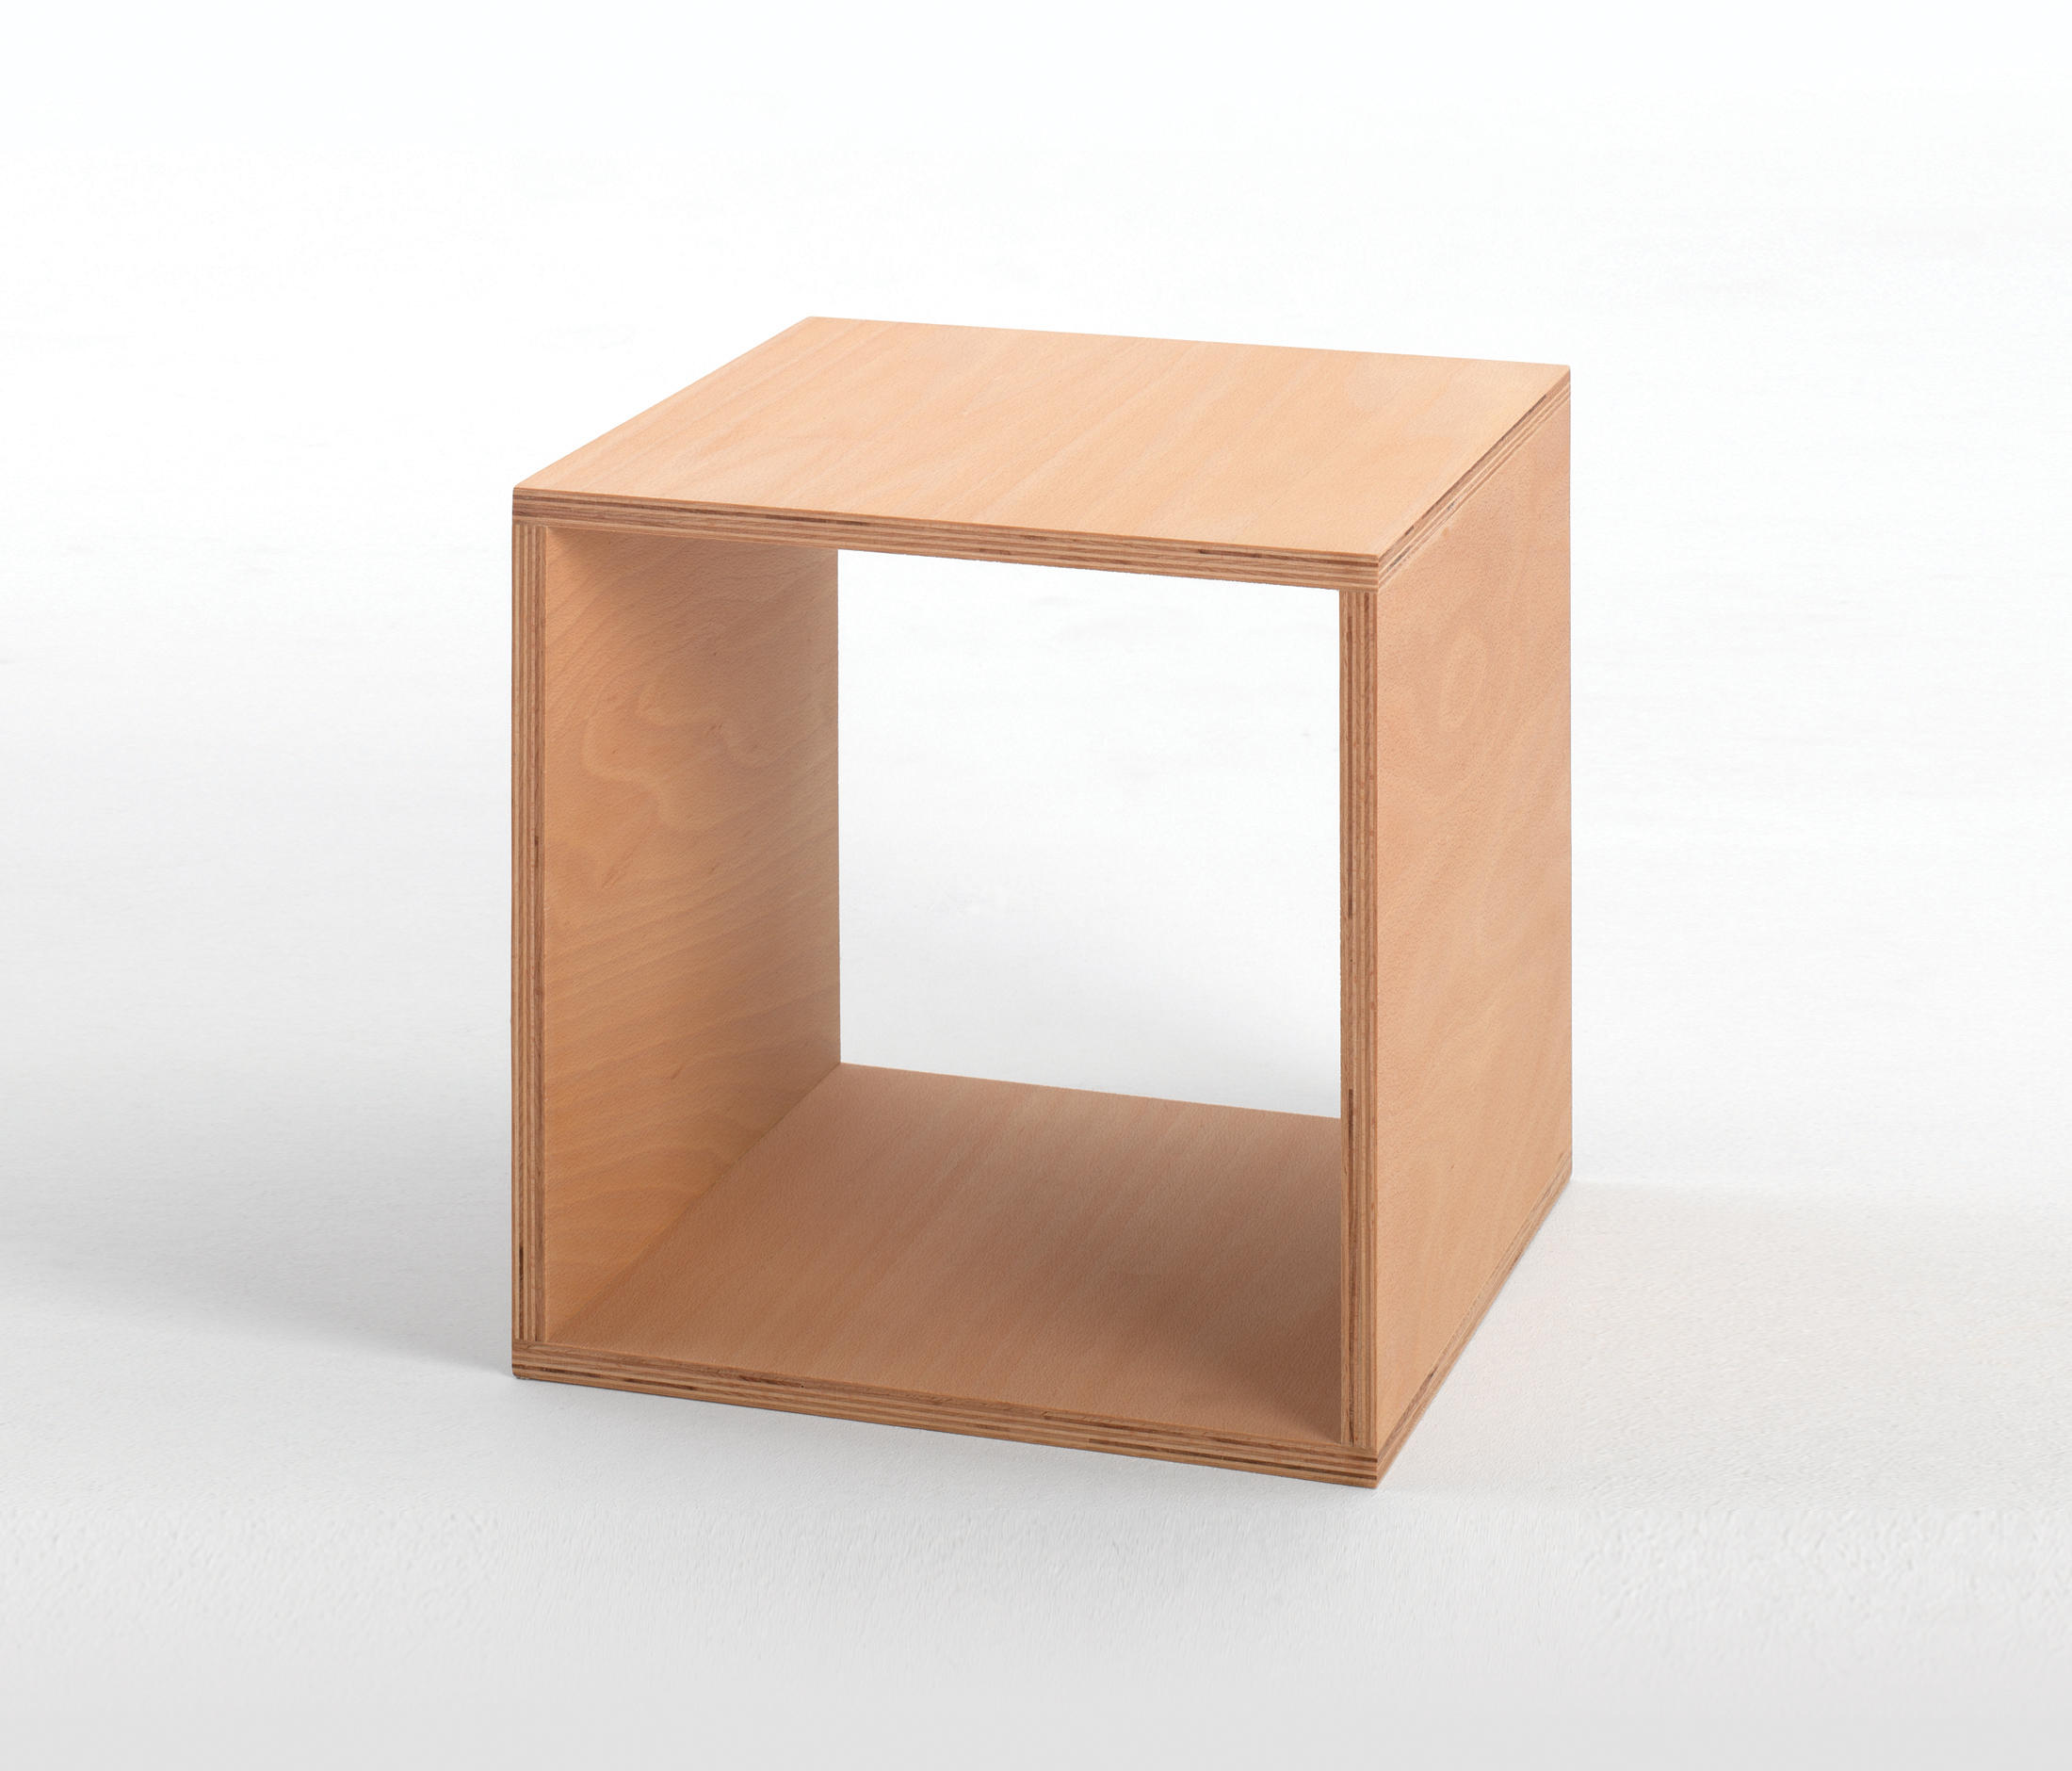 Cube Möbel Tojo Cube Side Tables From Tojo Möbel Architonic